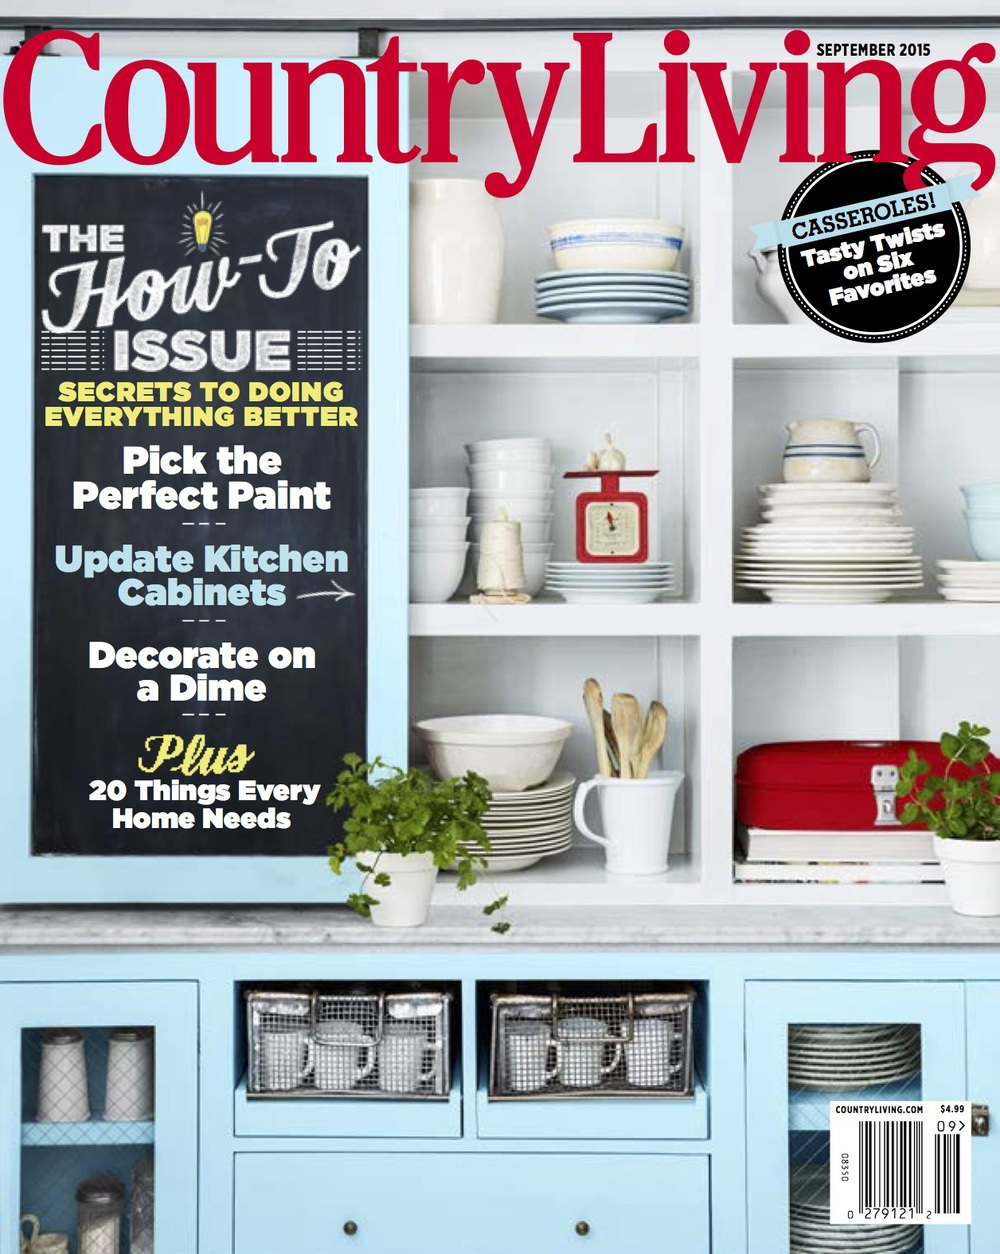 Sepetmber Issue Cover of Country Living